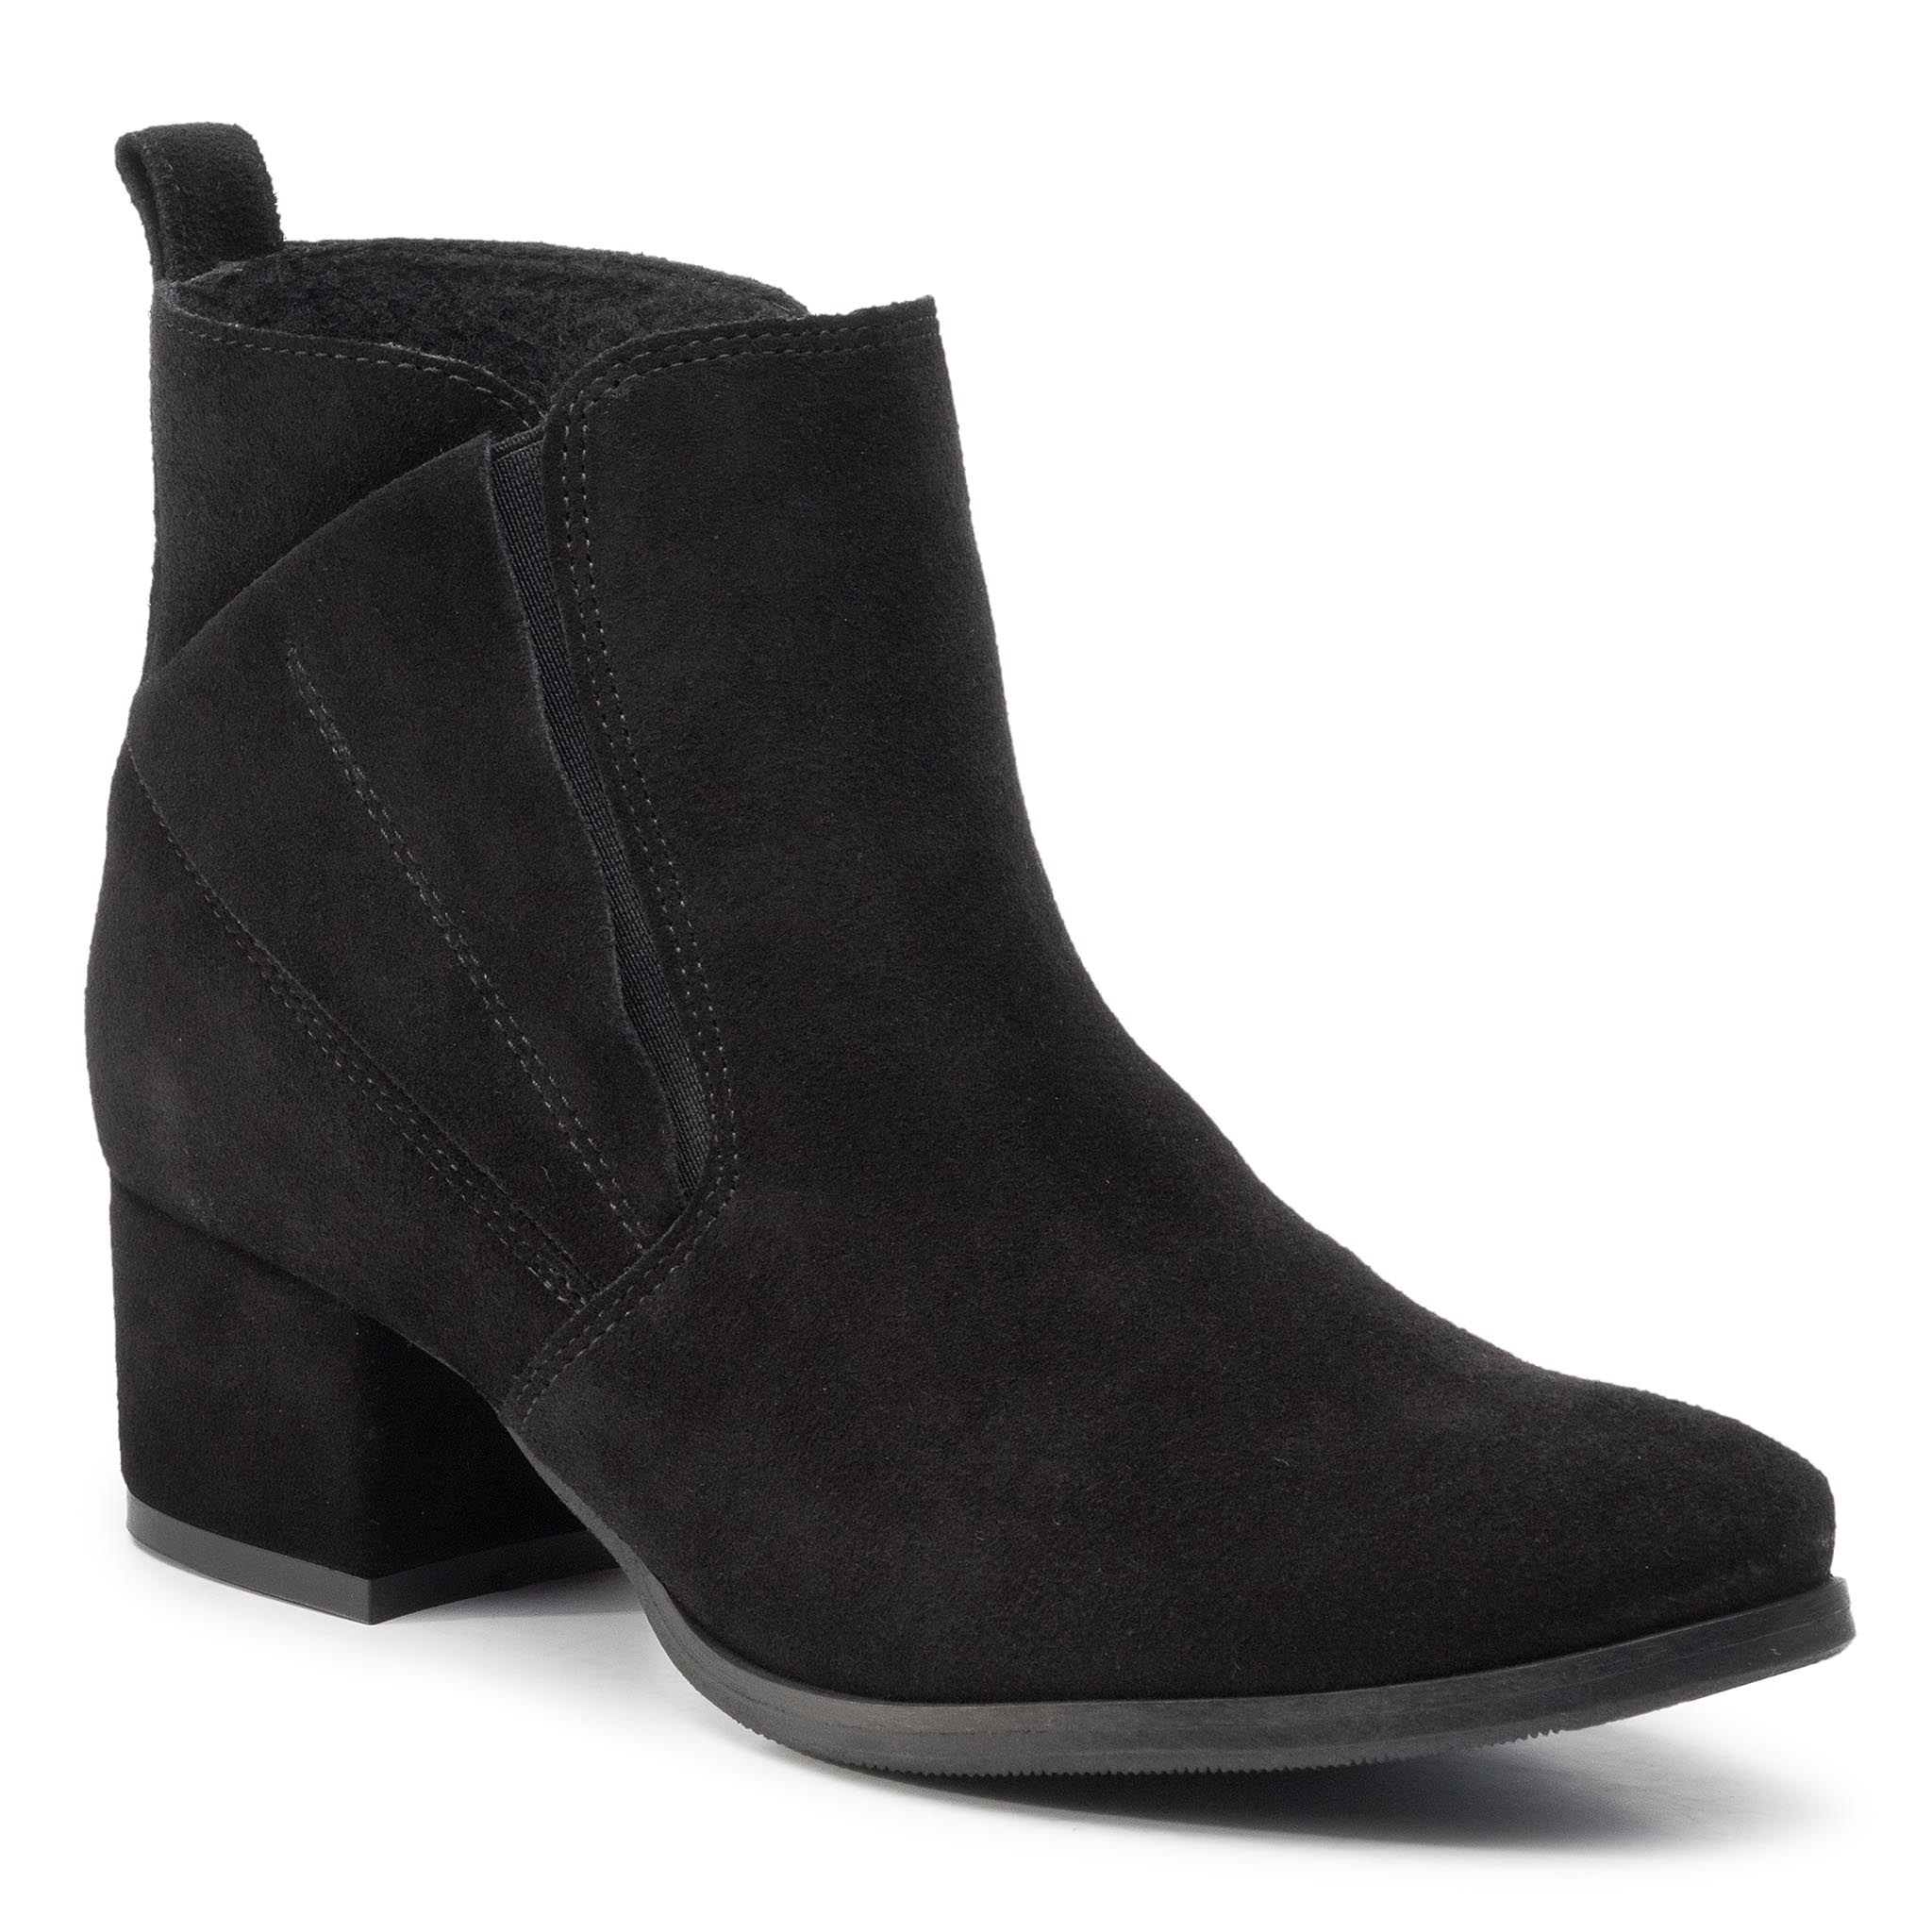 Bottines ANN MEX - 0489 01D Noir